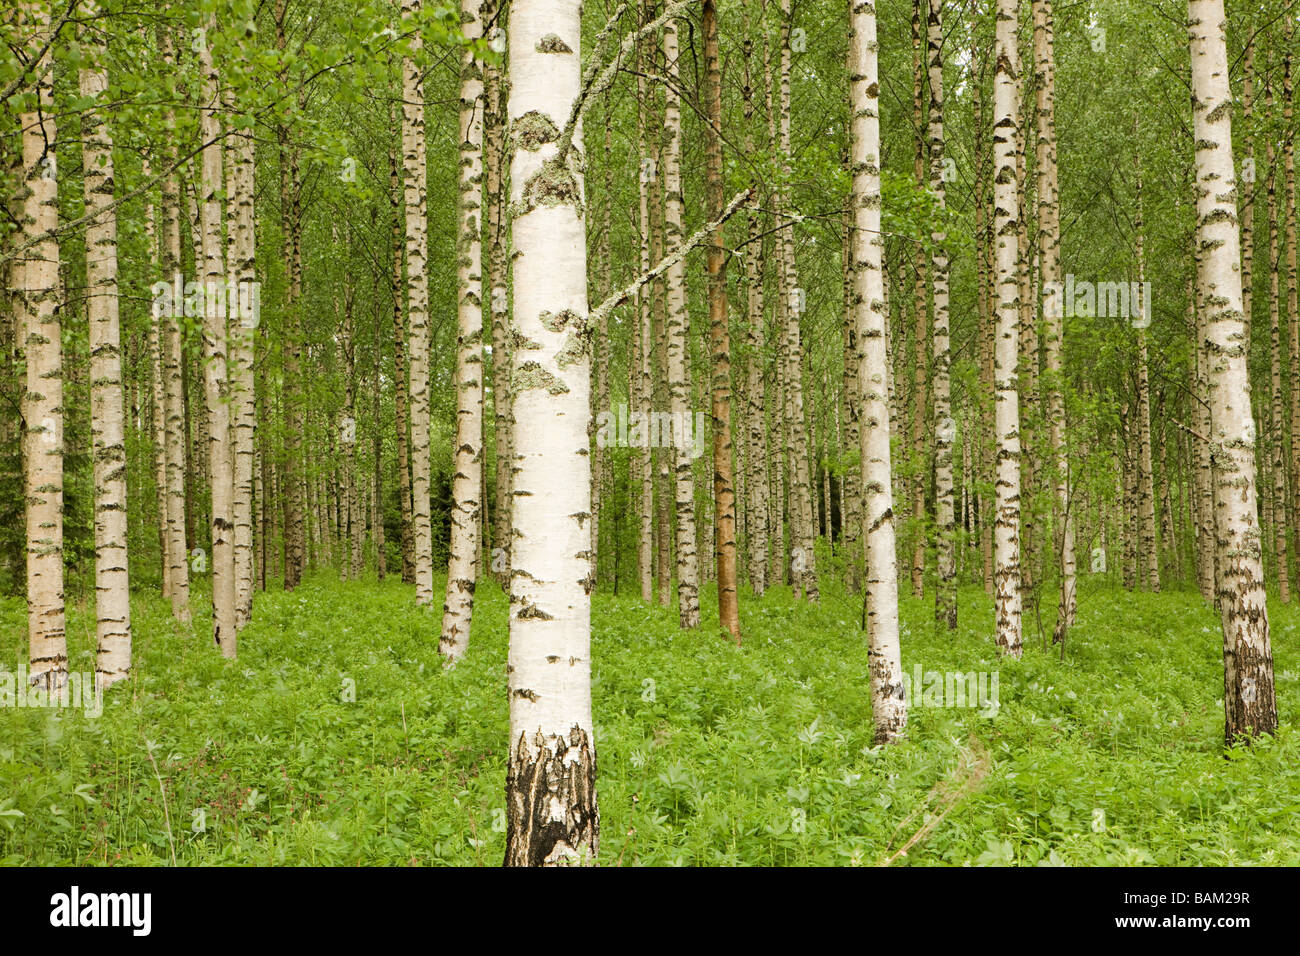 Forest of birch trees Stock Photo